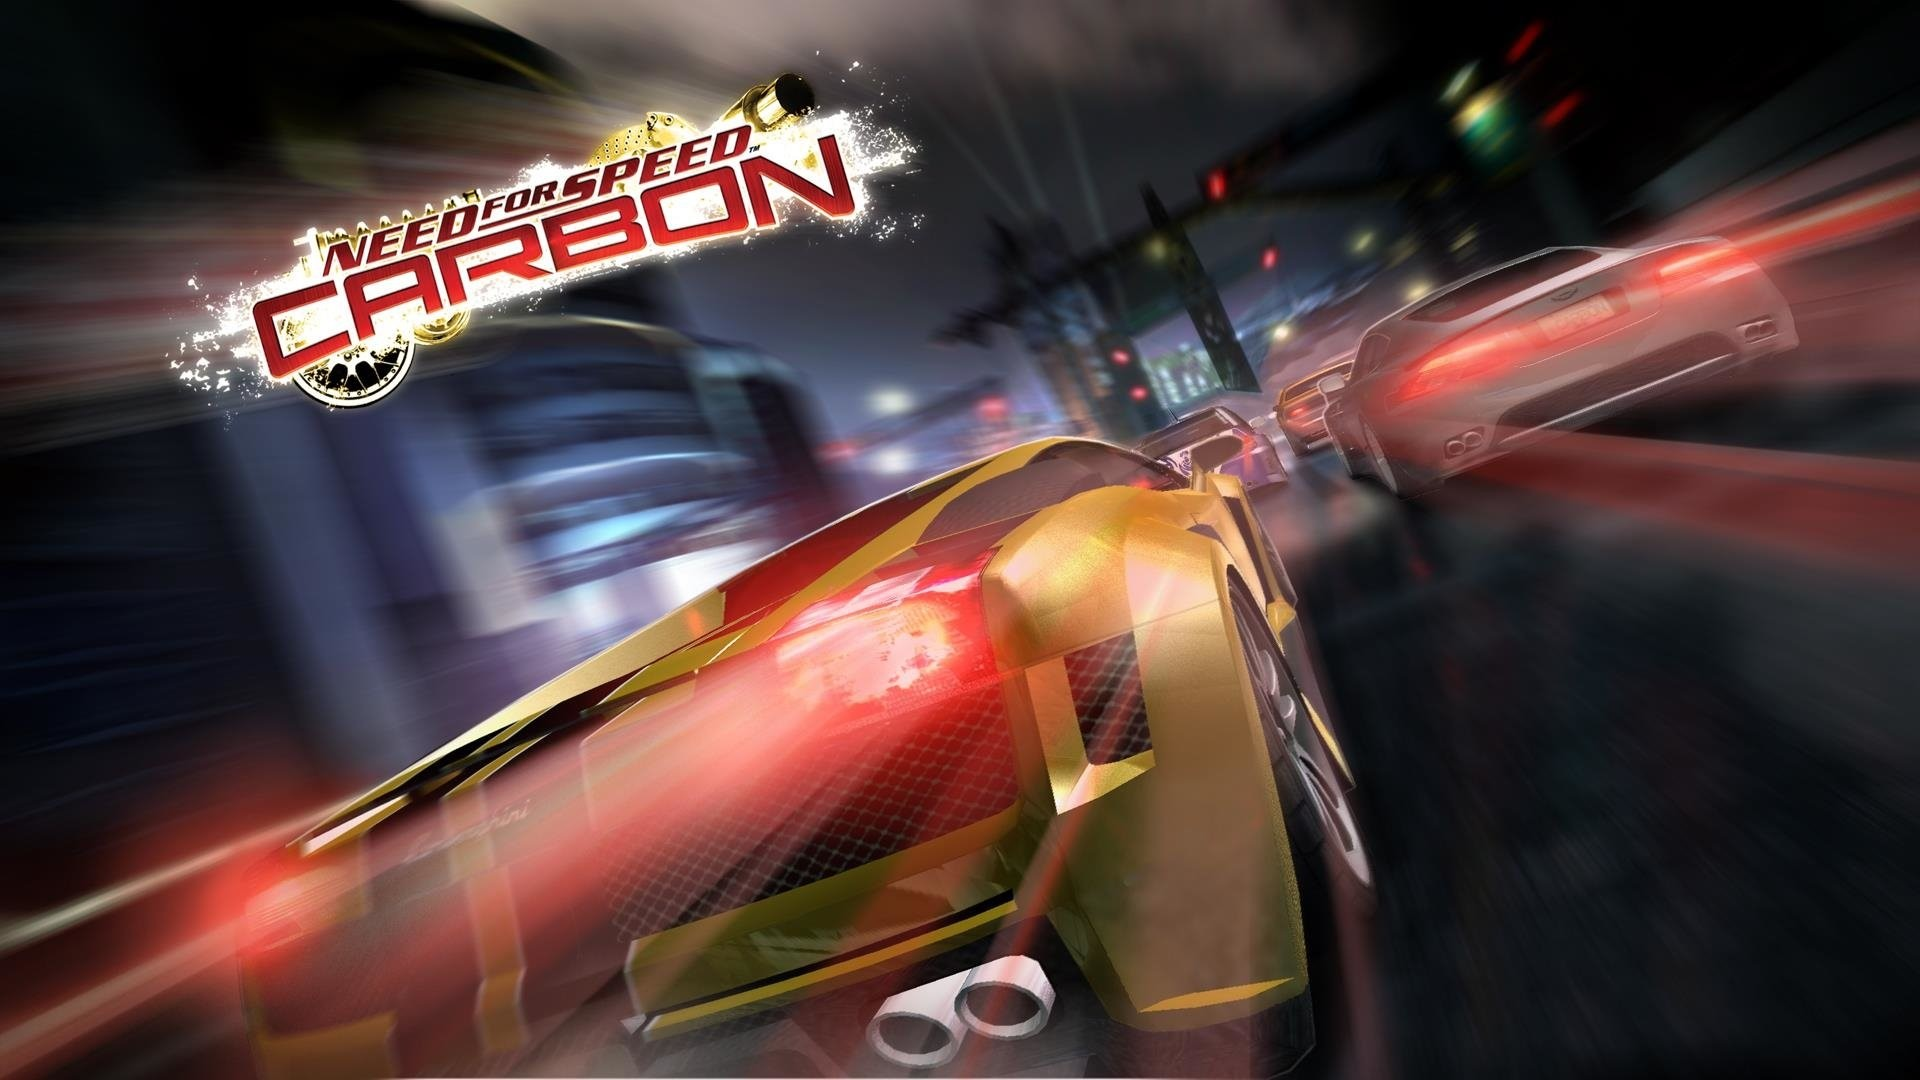 1920x1080 Video Game - Need for Speed: Carbon Wallpaper